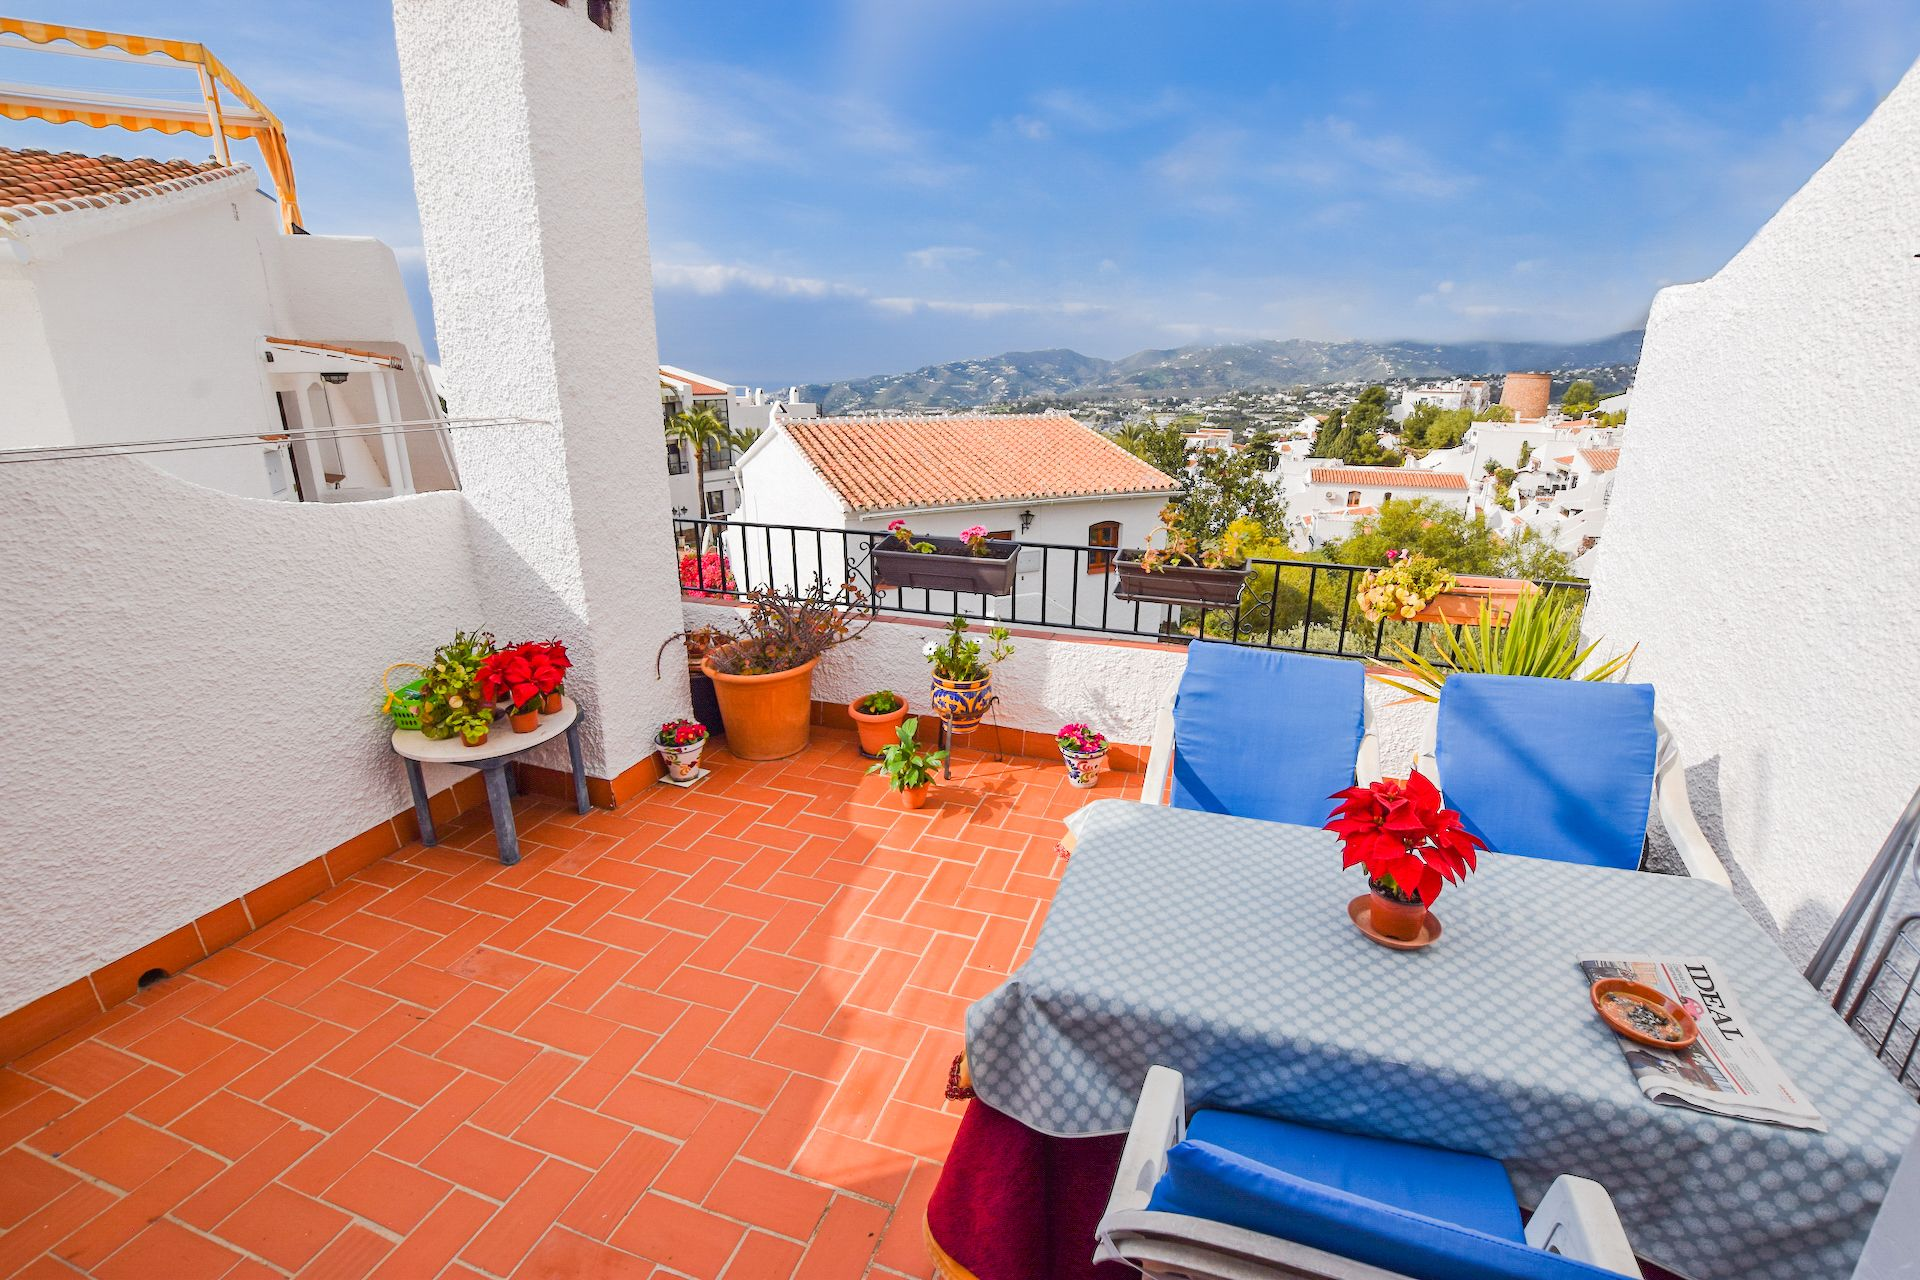 Apartment in Nerja, for sale